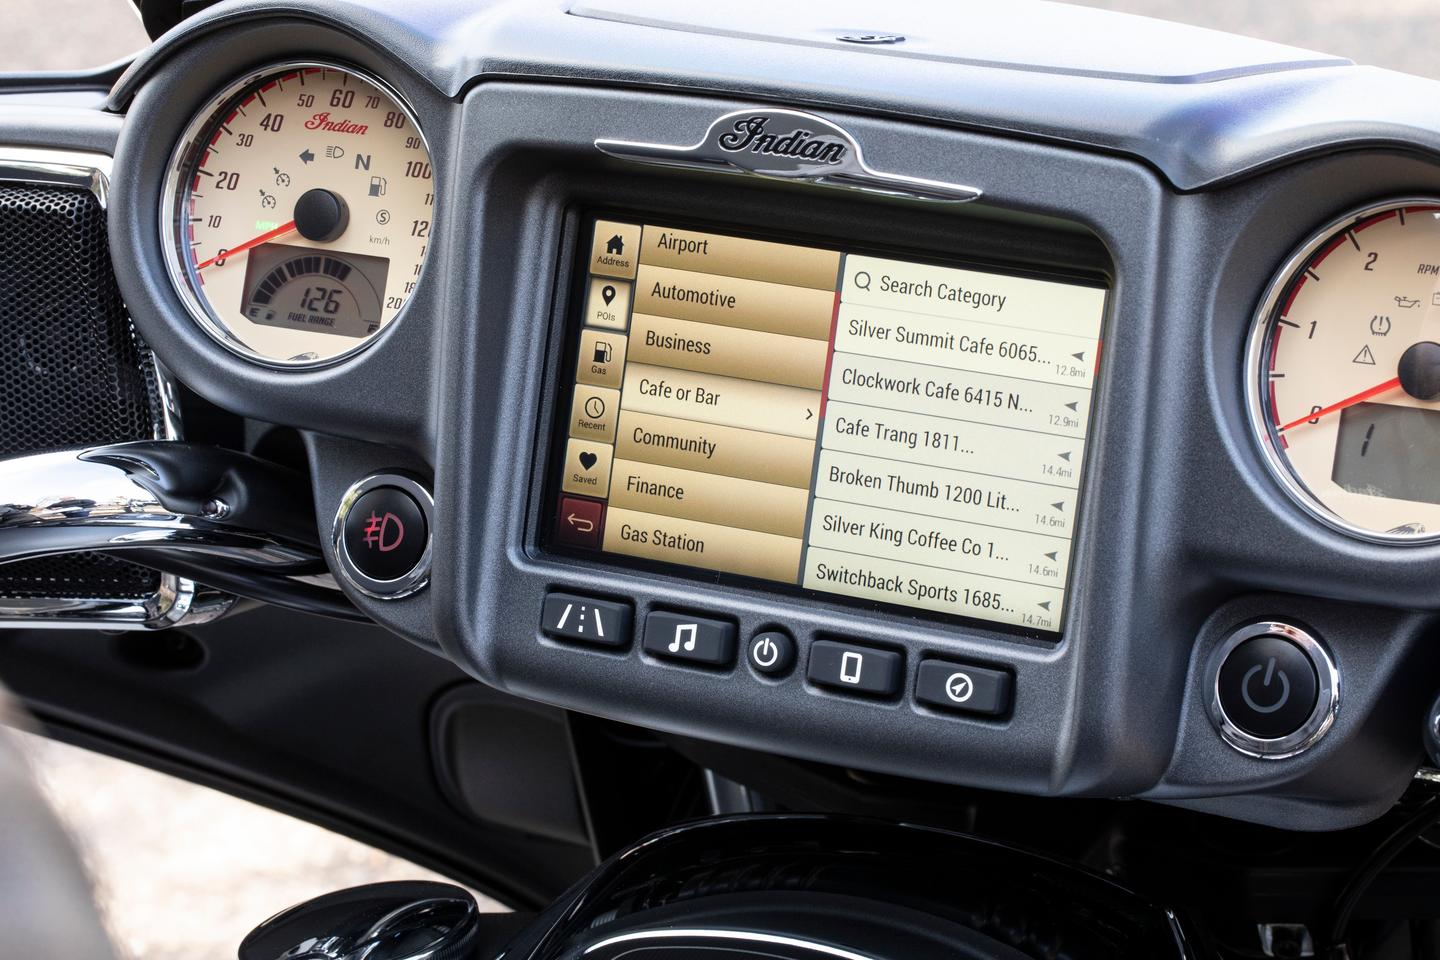 2019 Indian Roadmaster: giant touch screen